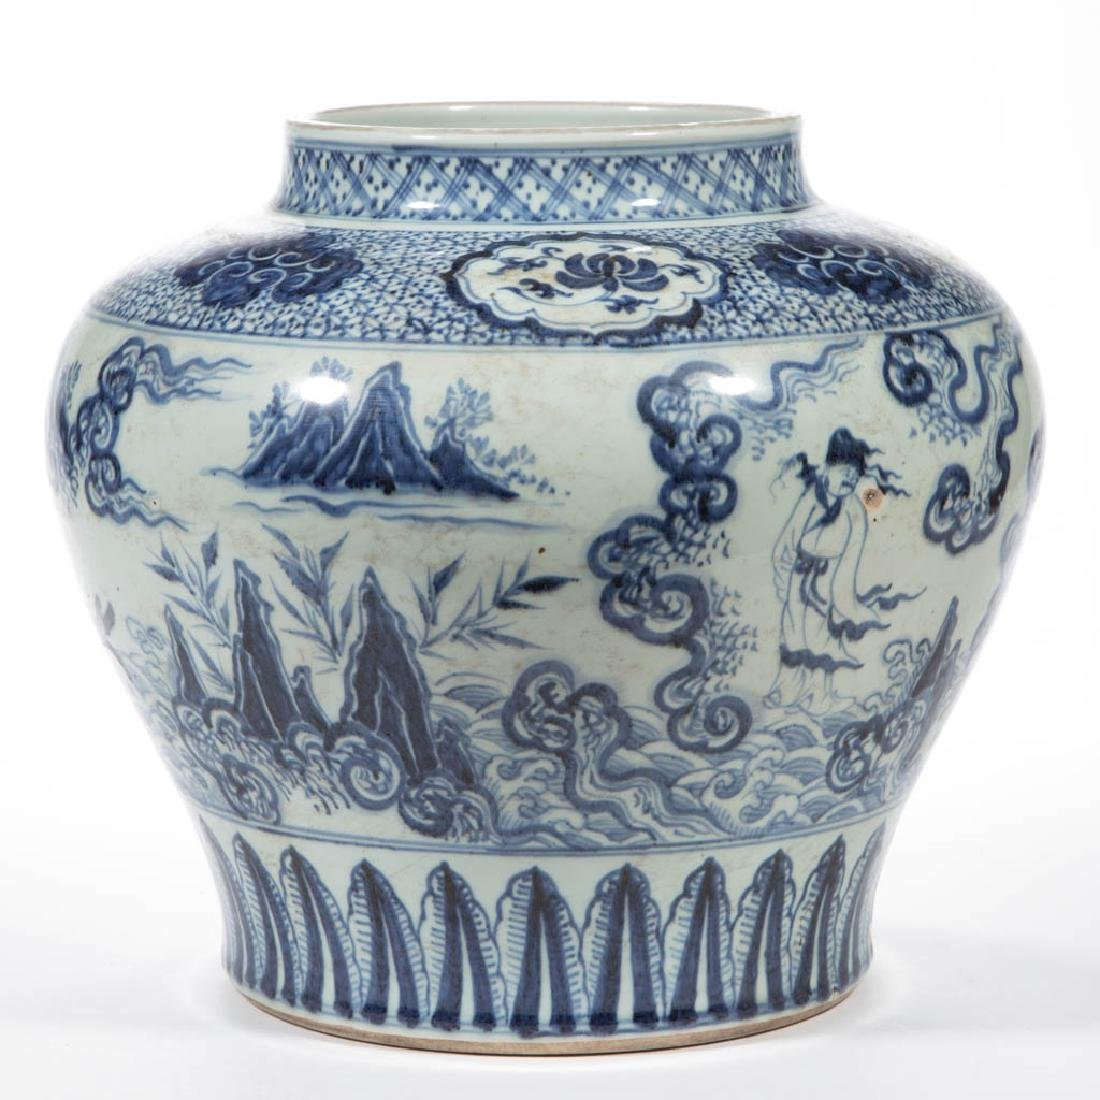 CHINESE EXPORT QING-STYLE PORCELAIN BLUE AND WHITE JAR - 2